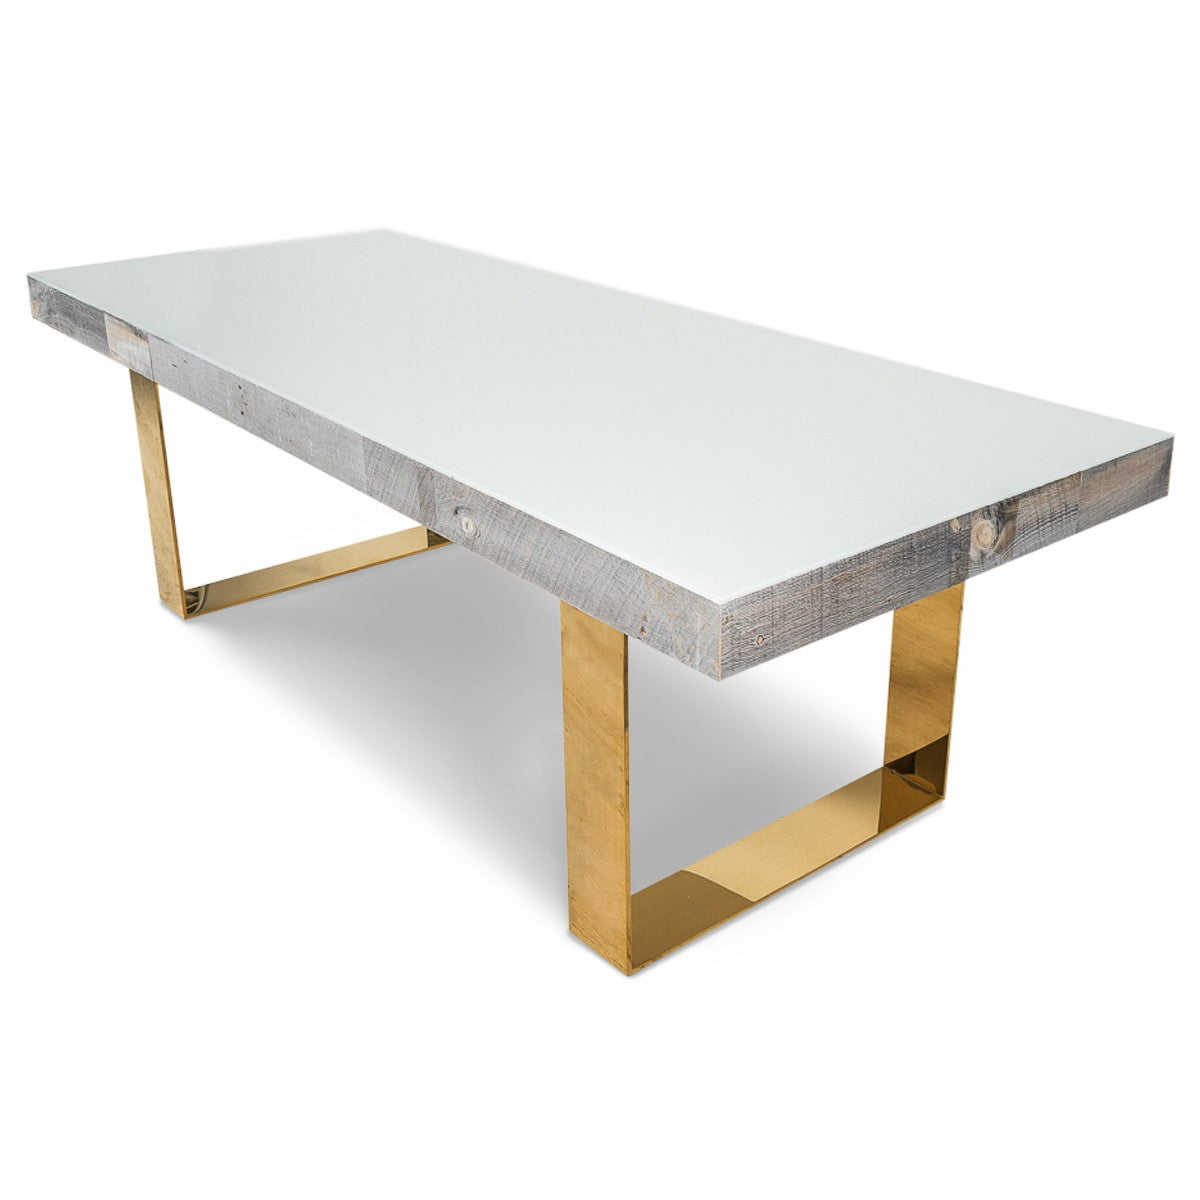 Cody dining table with brass legs